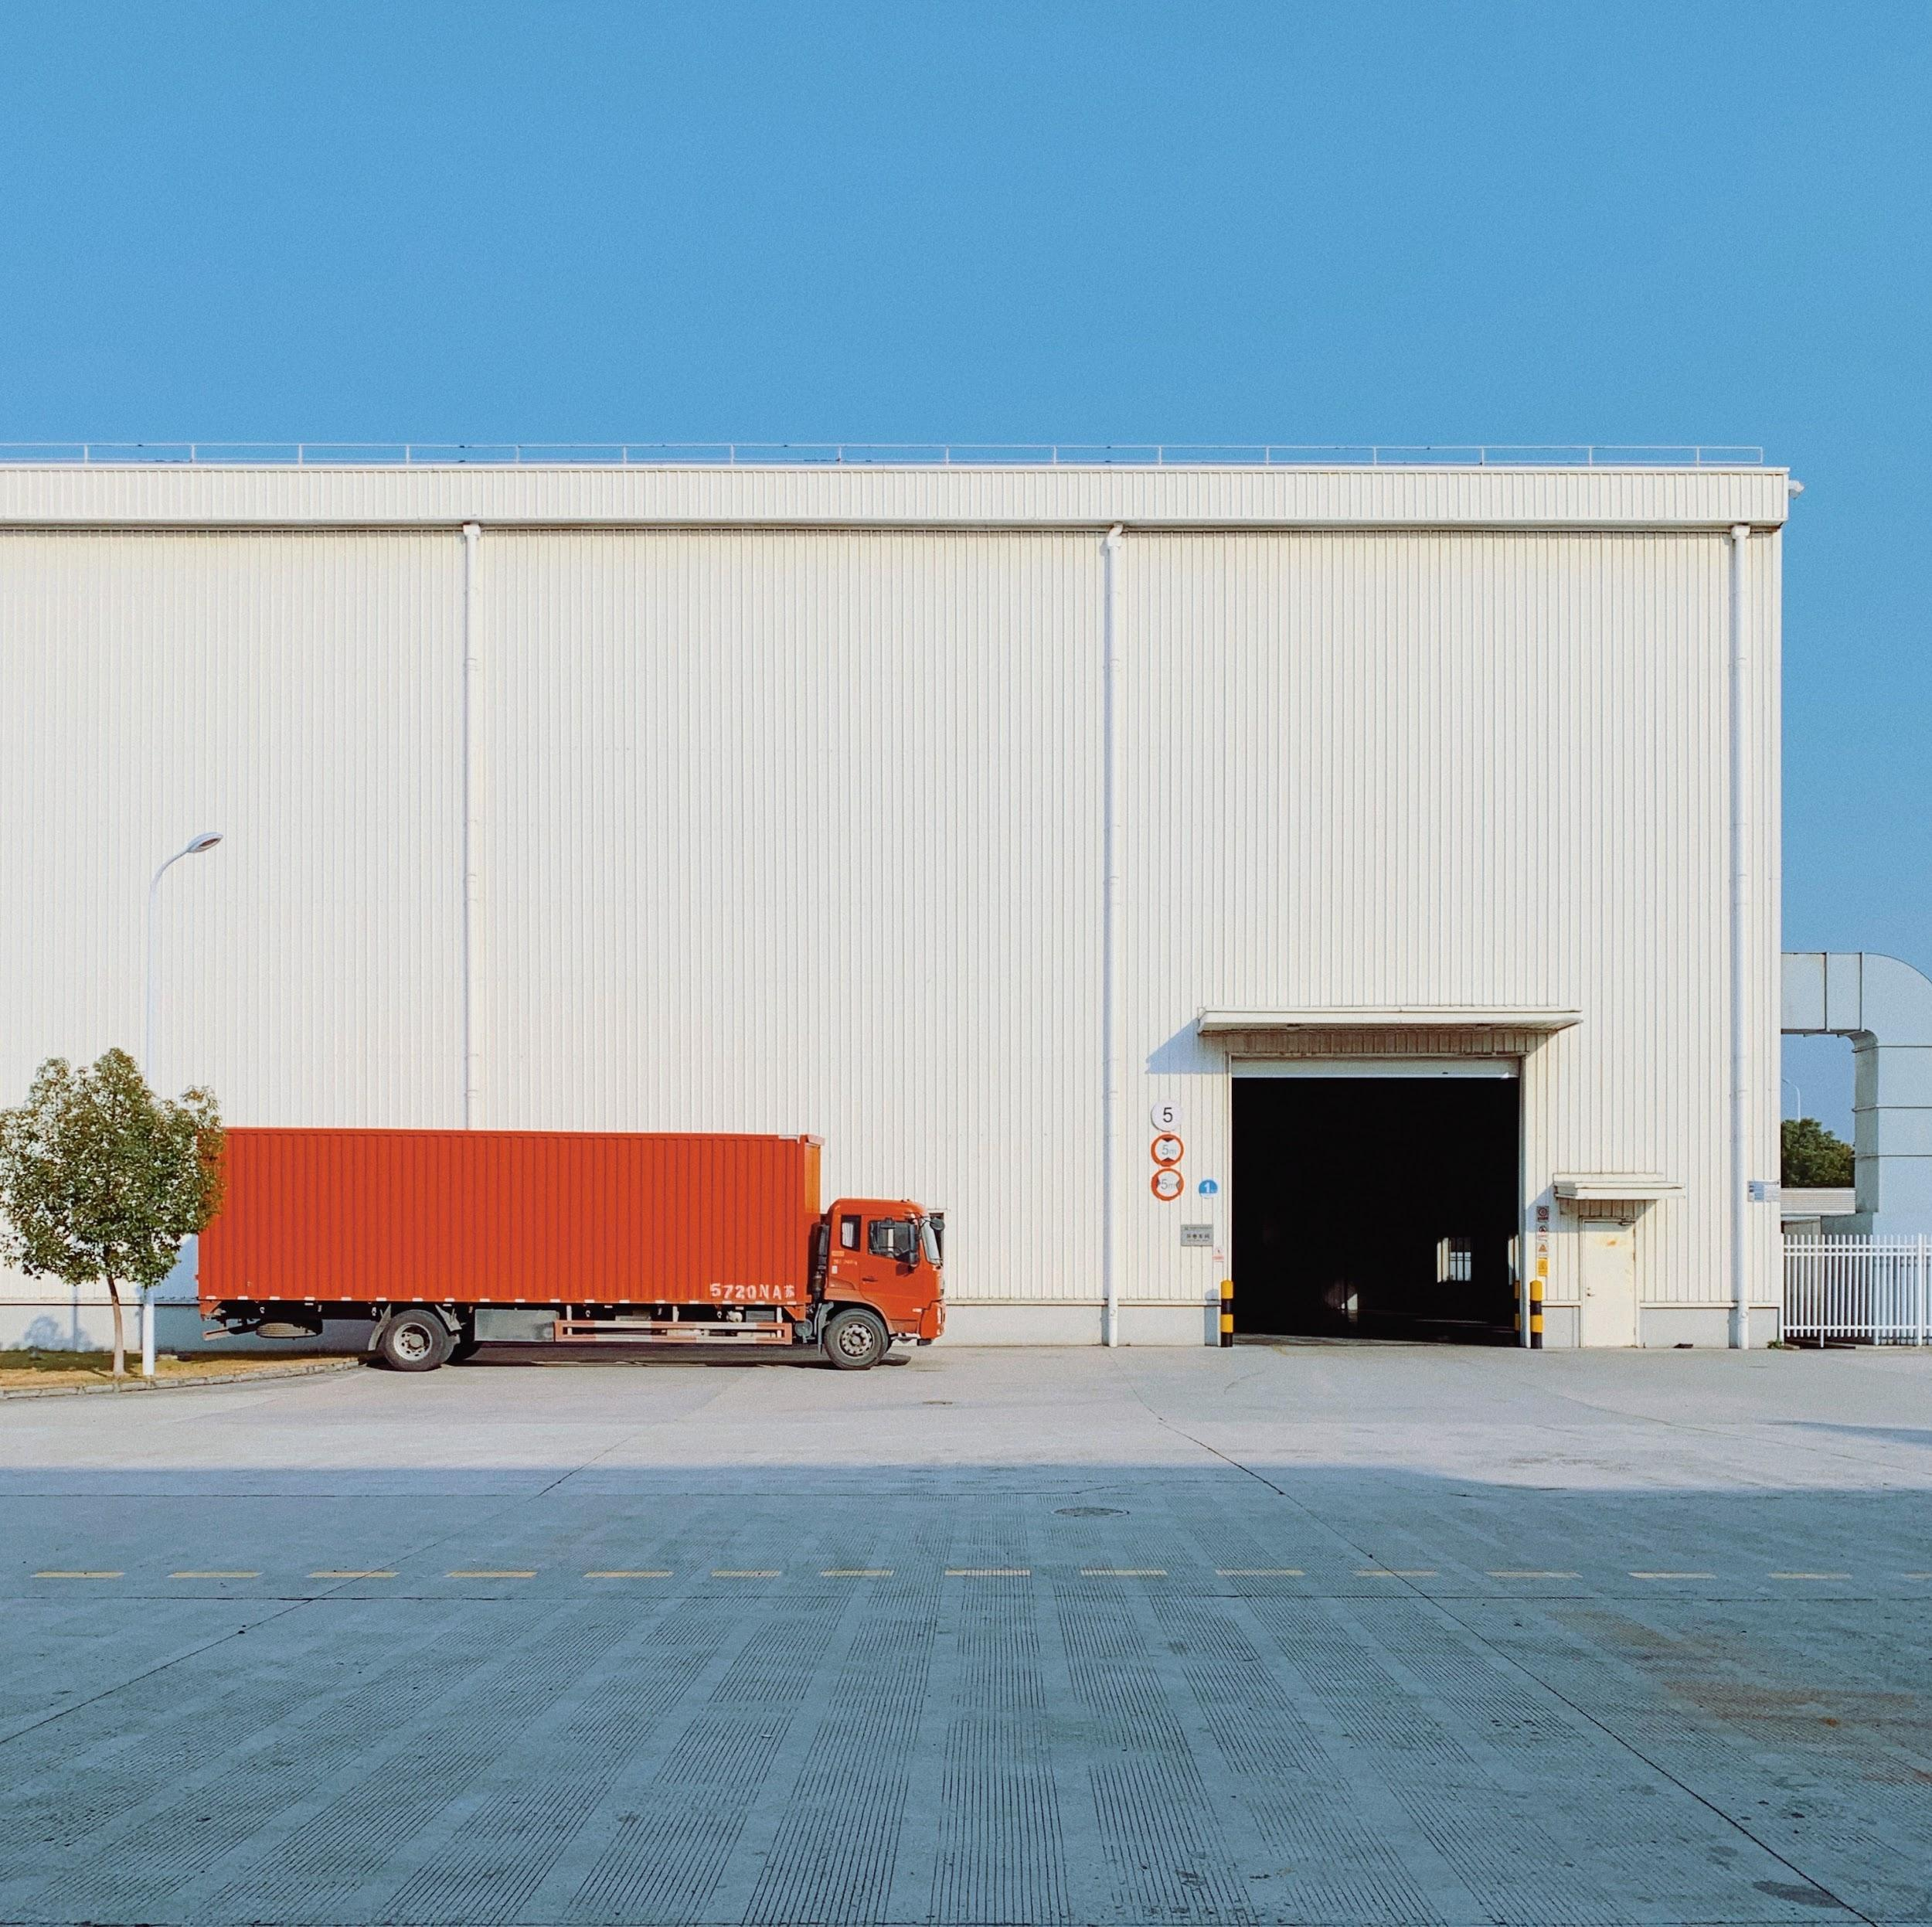 story from: The Logistics Point August 2020